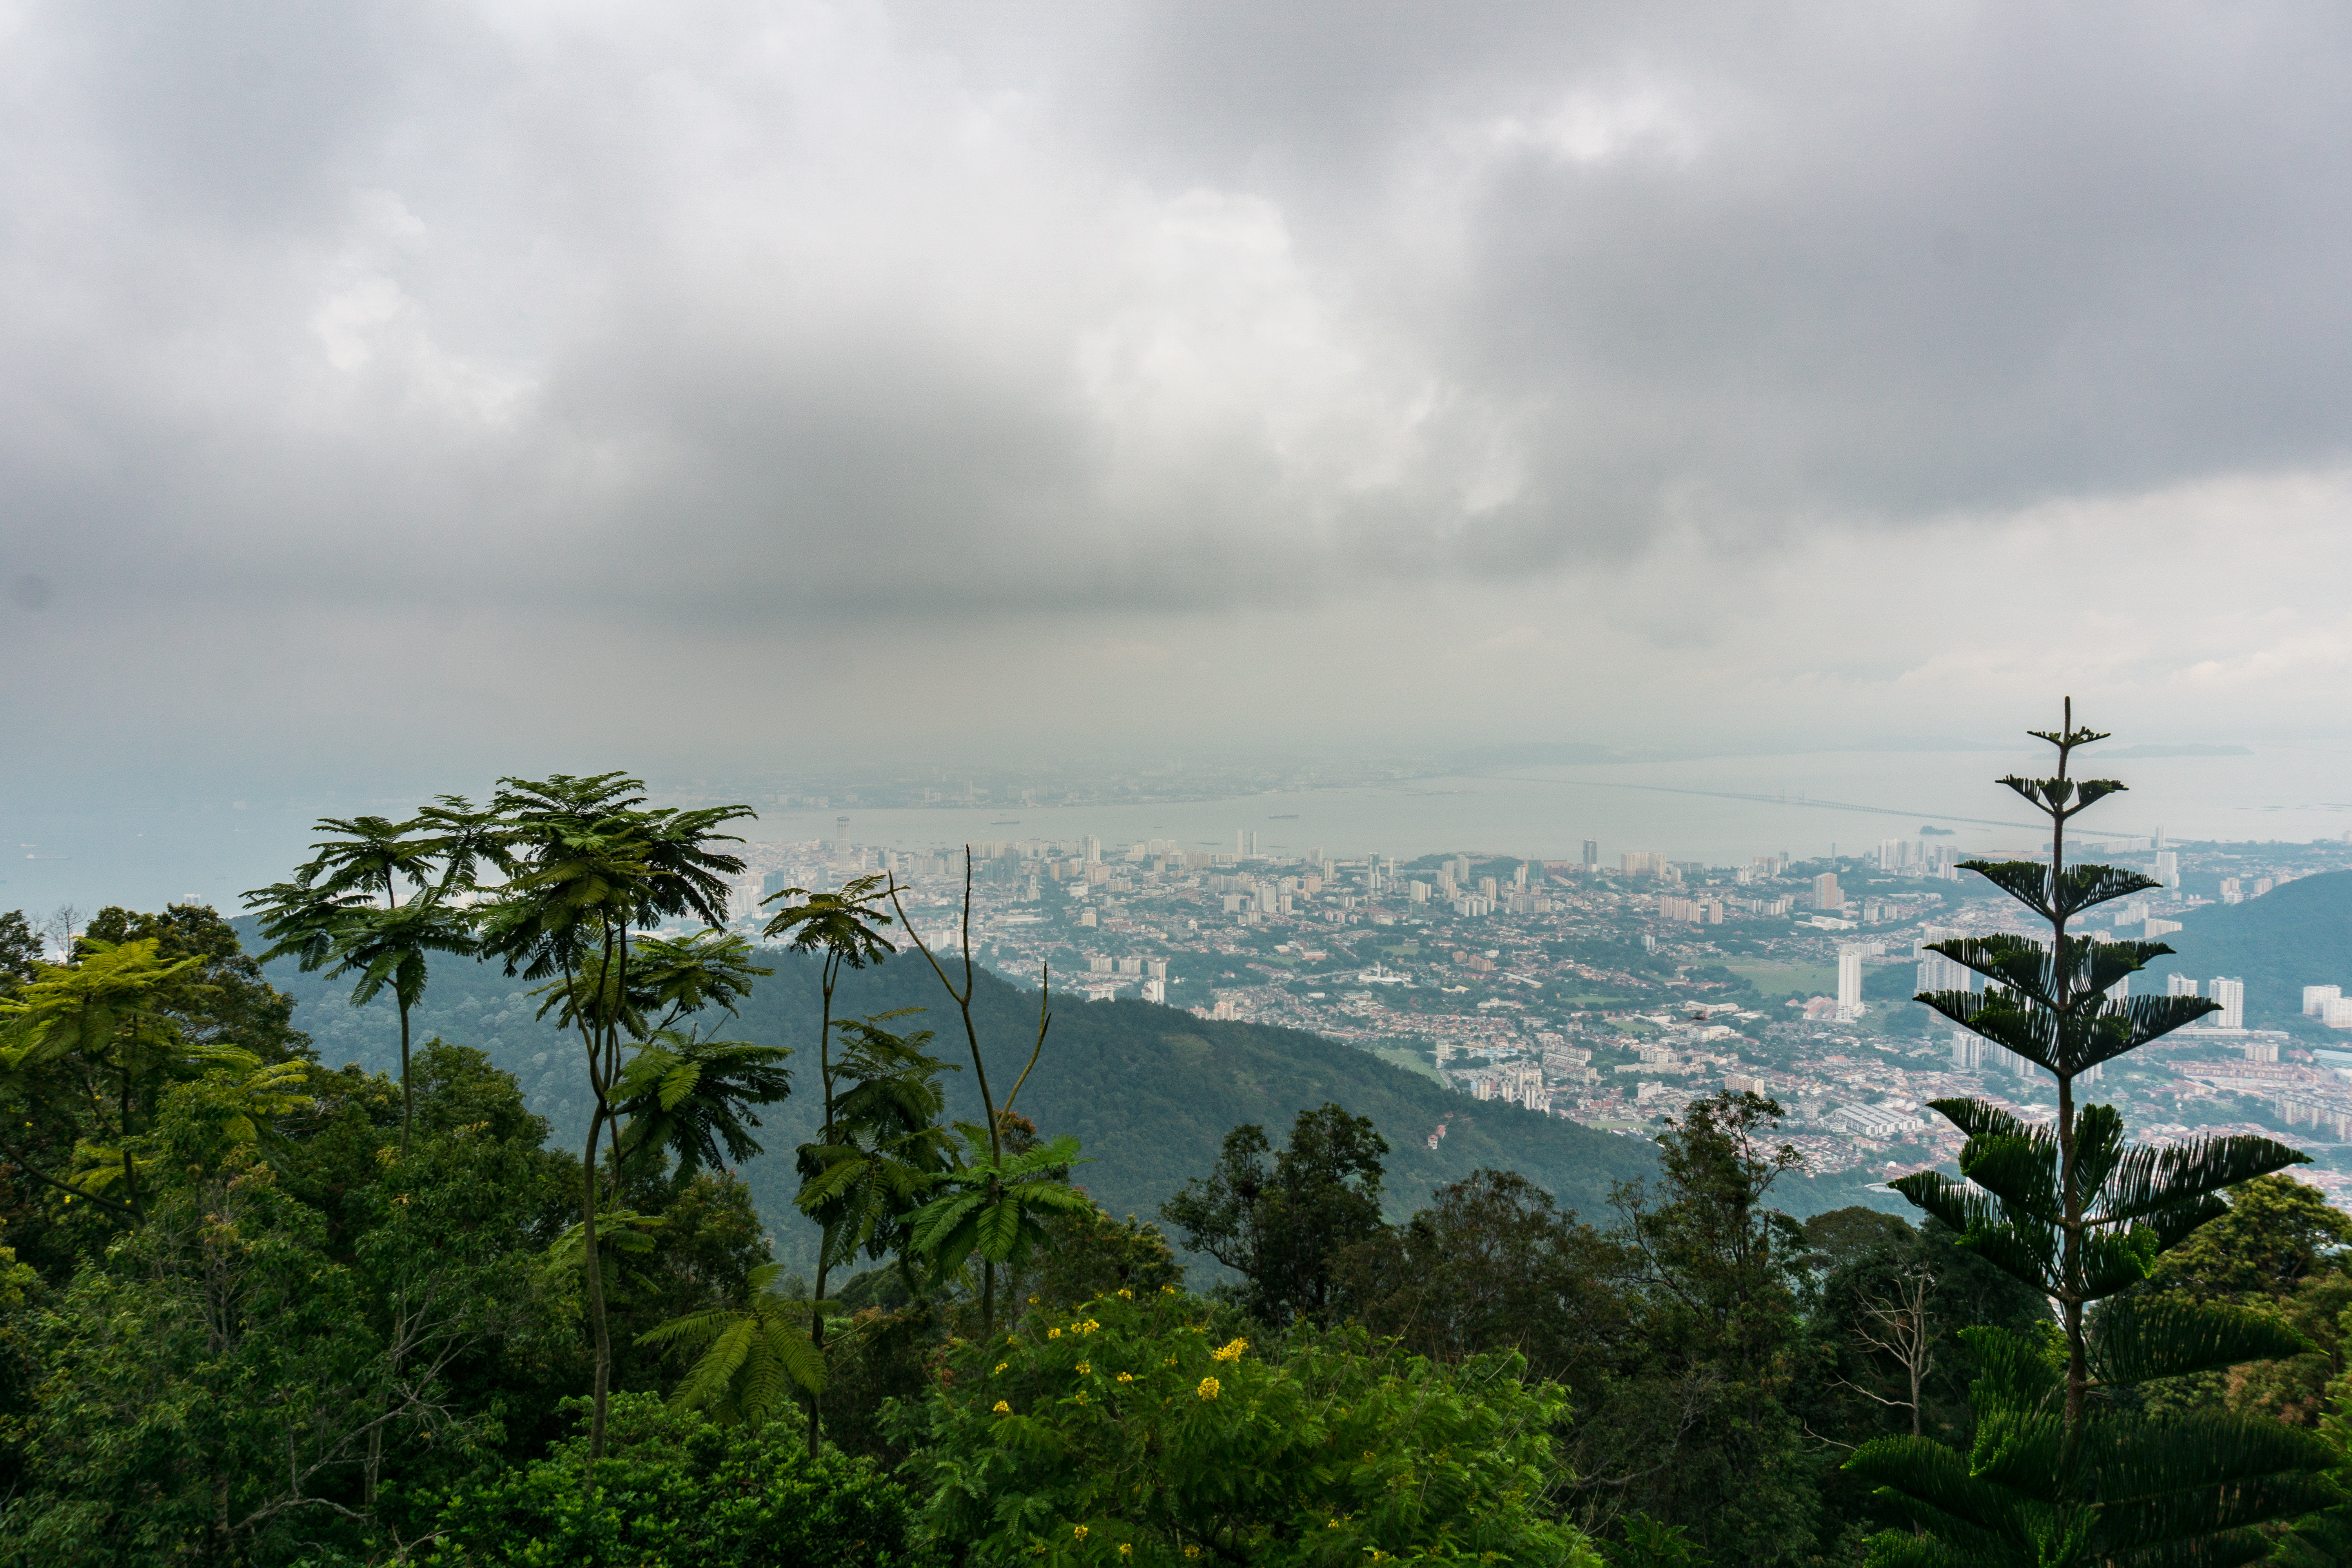 Aussicht vom Penang Hill auf Penang